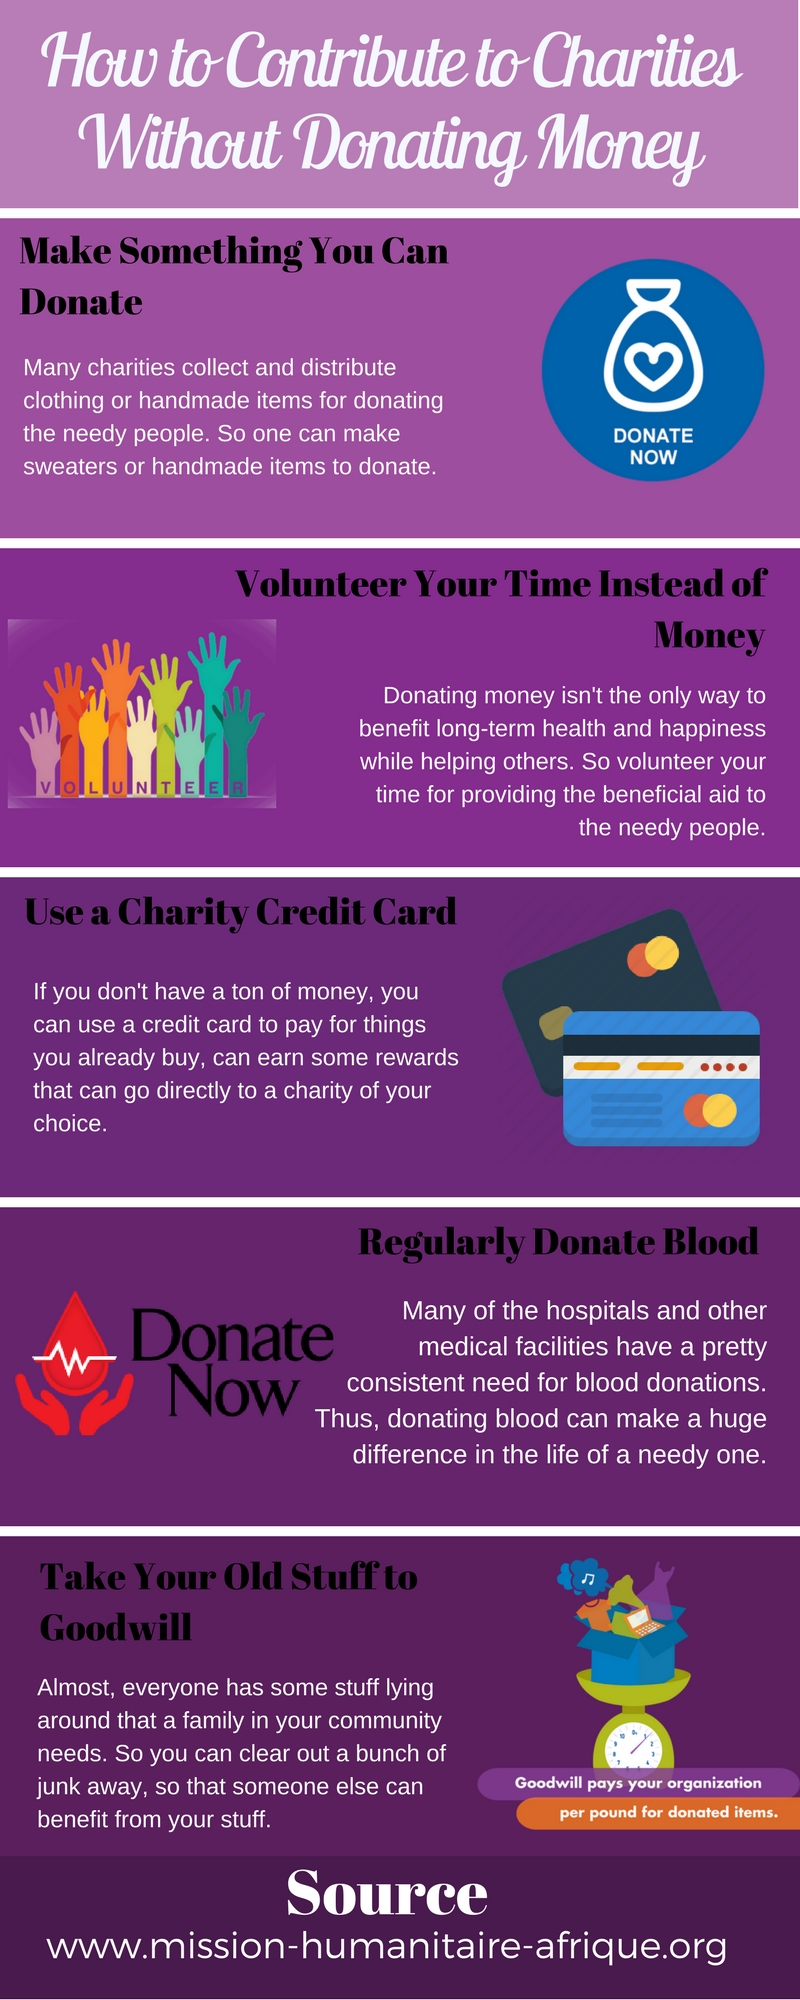 How Can I Contribute To Charities Without Donating Money. Aenon Bible College Paw Locksmith Los Angeles. Prentice Hall Mathematics Course 2 Online Textbook. Direct Tv Bundle Specials College Math Online. Residency Program Accreditation. Credit Card Debt Forgiveness. Inexpensive Mba Programs Ballard Mini Storage. Insurance Companies In Buffalo Ny. What Can You Take For Erectile Dysfunction